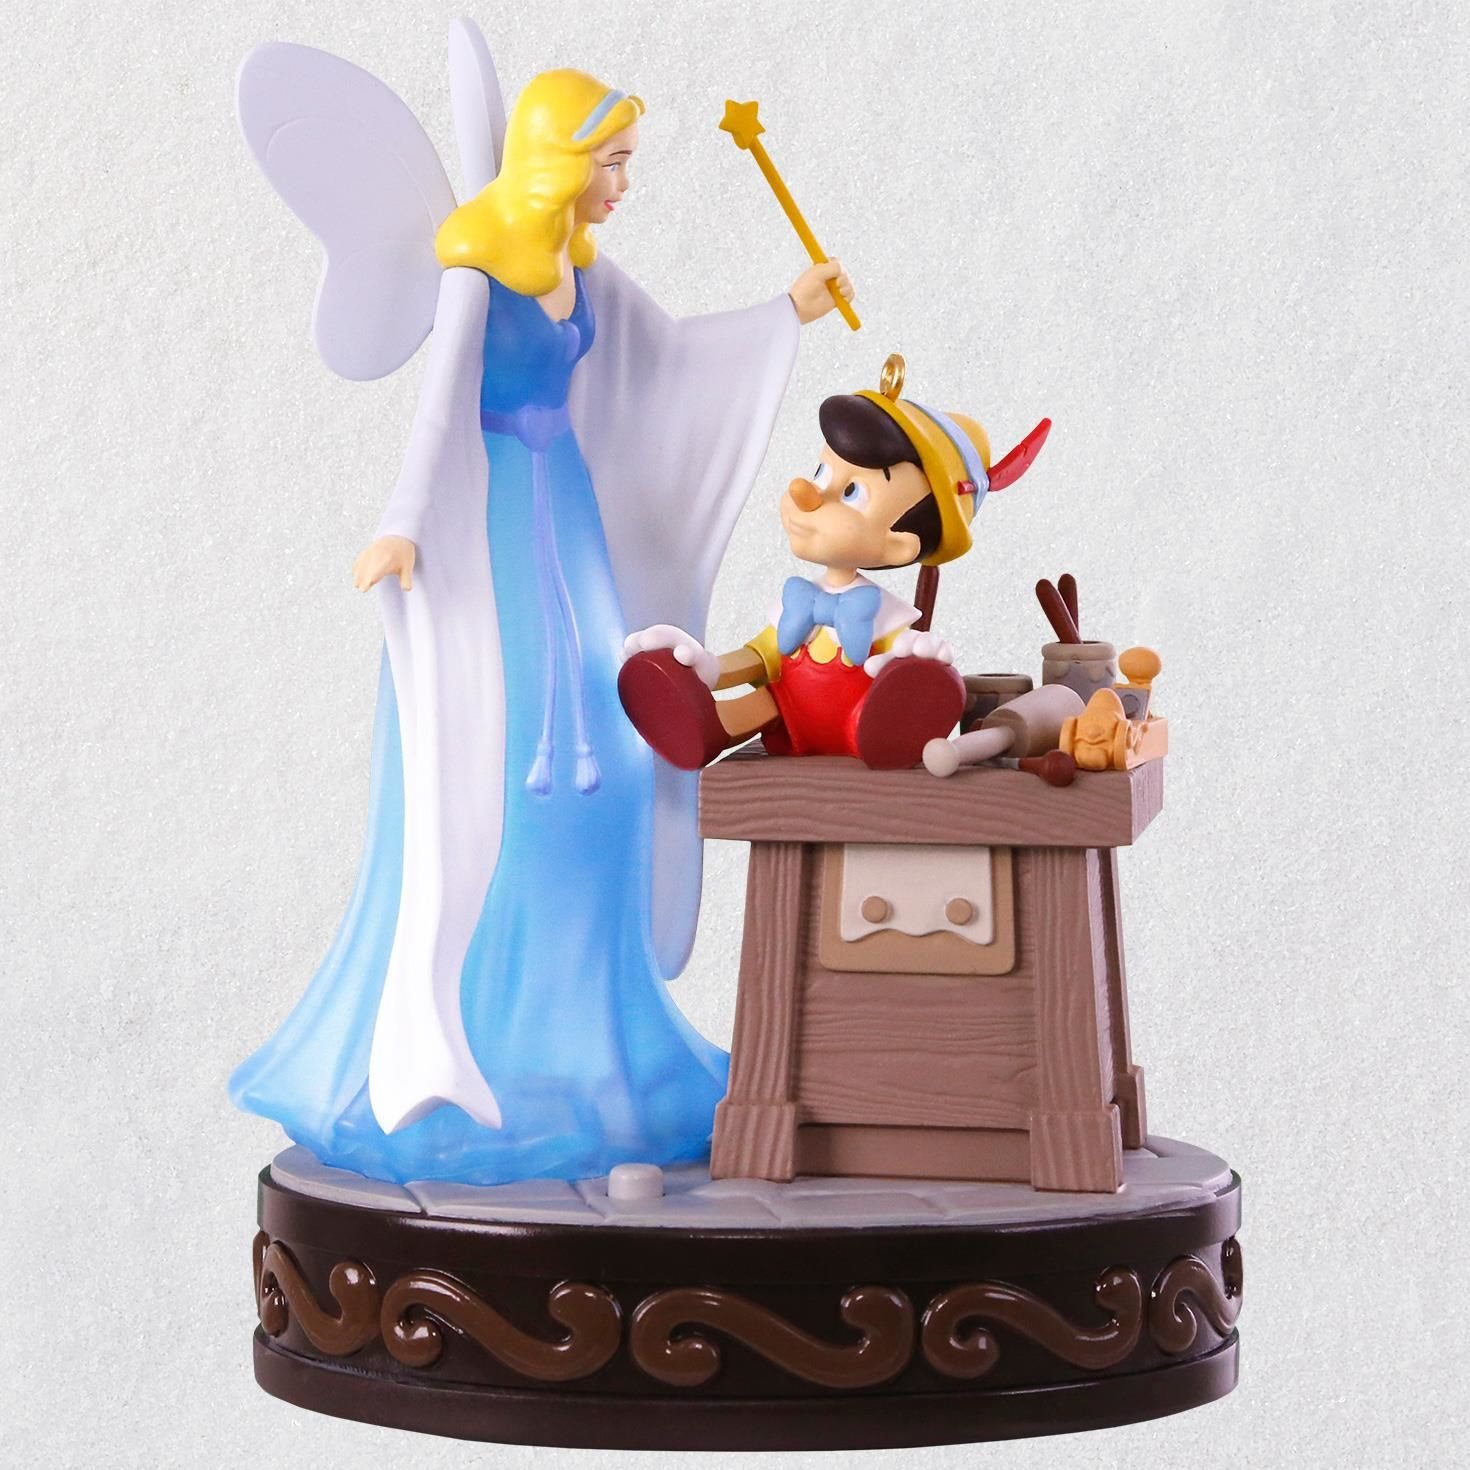 Hallmark Disney Pinocchio A Real Boy Ornament With Light and Sound keepsake-ornaments Movies & TV